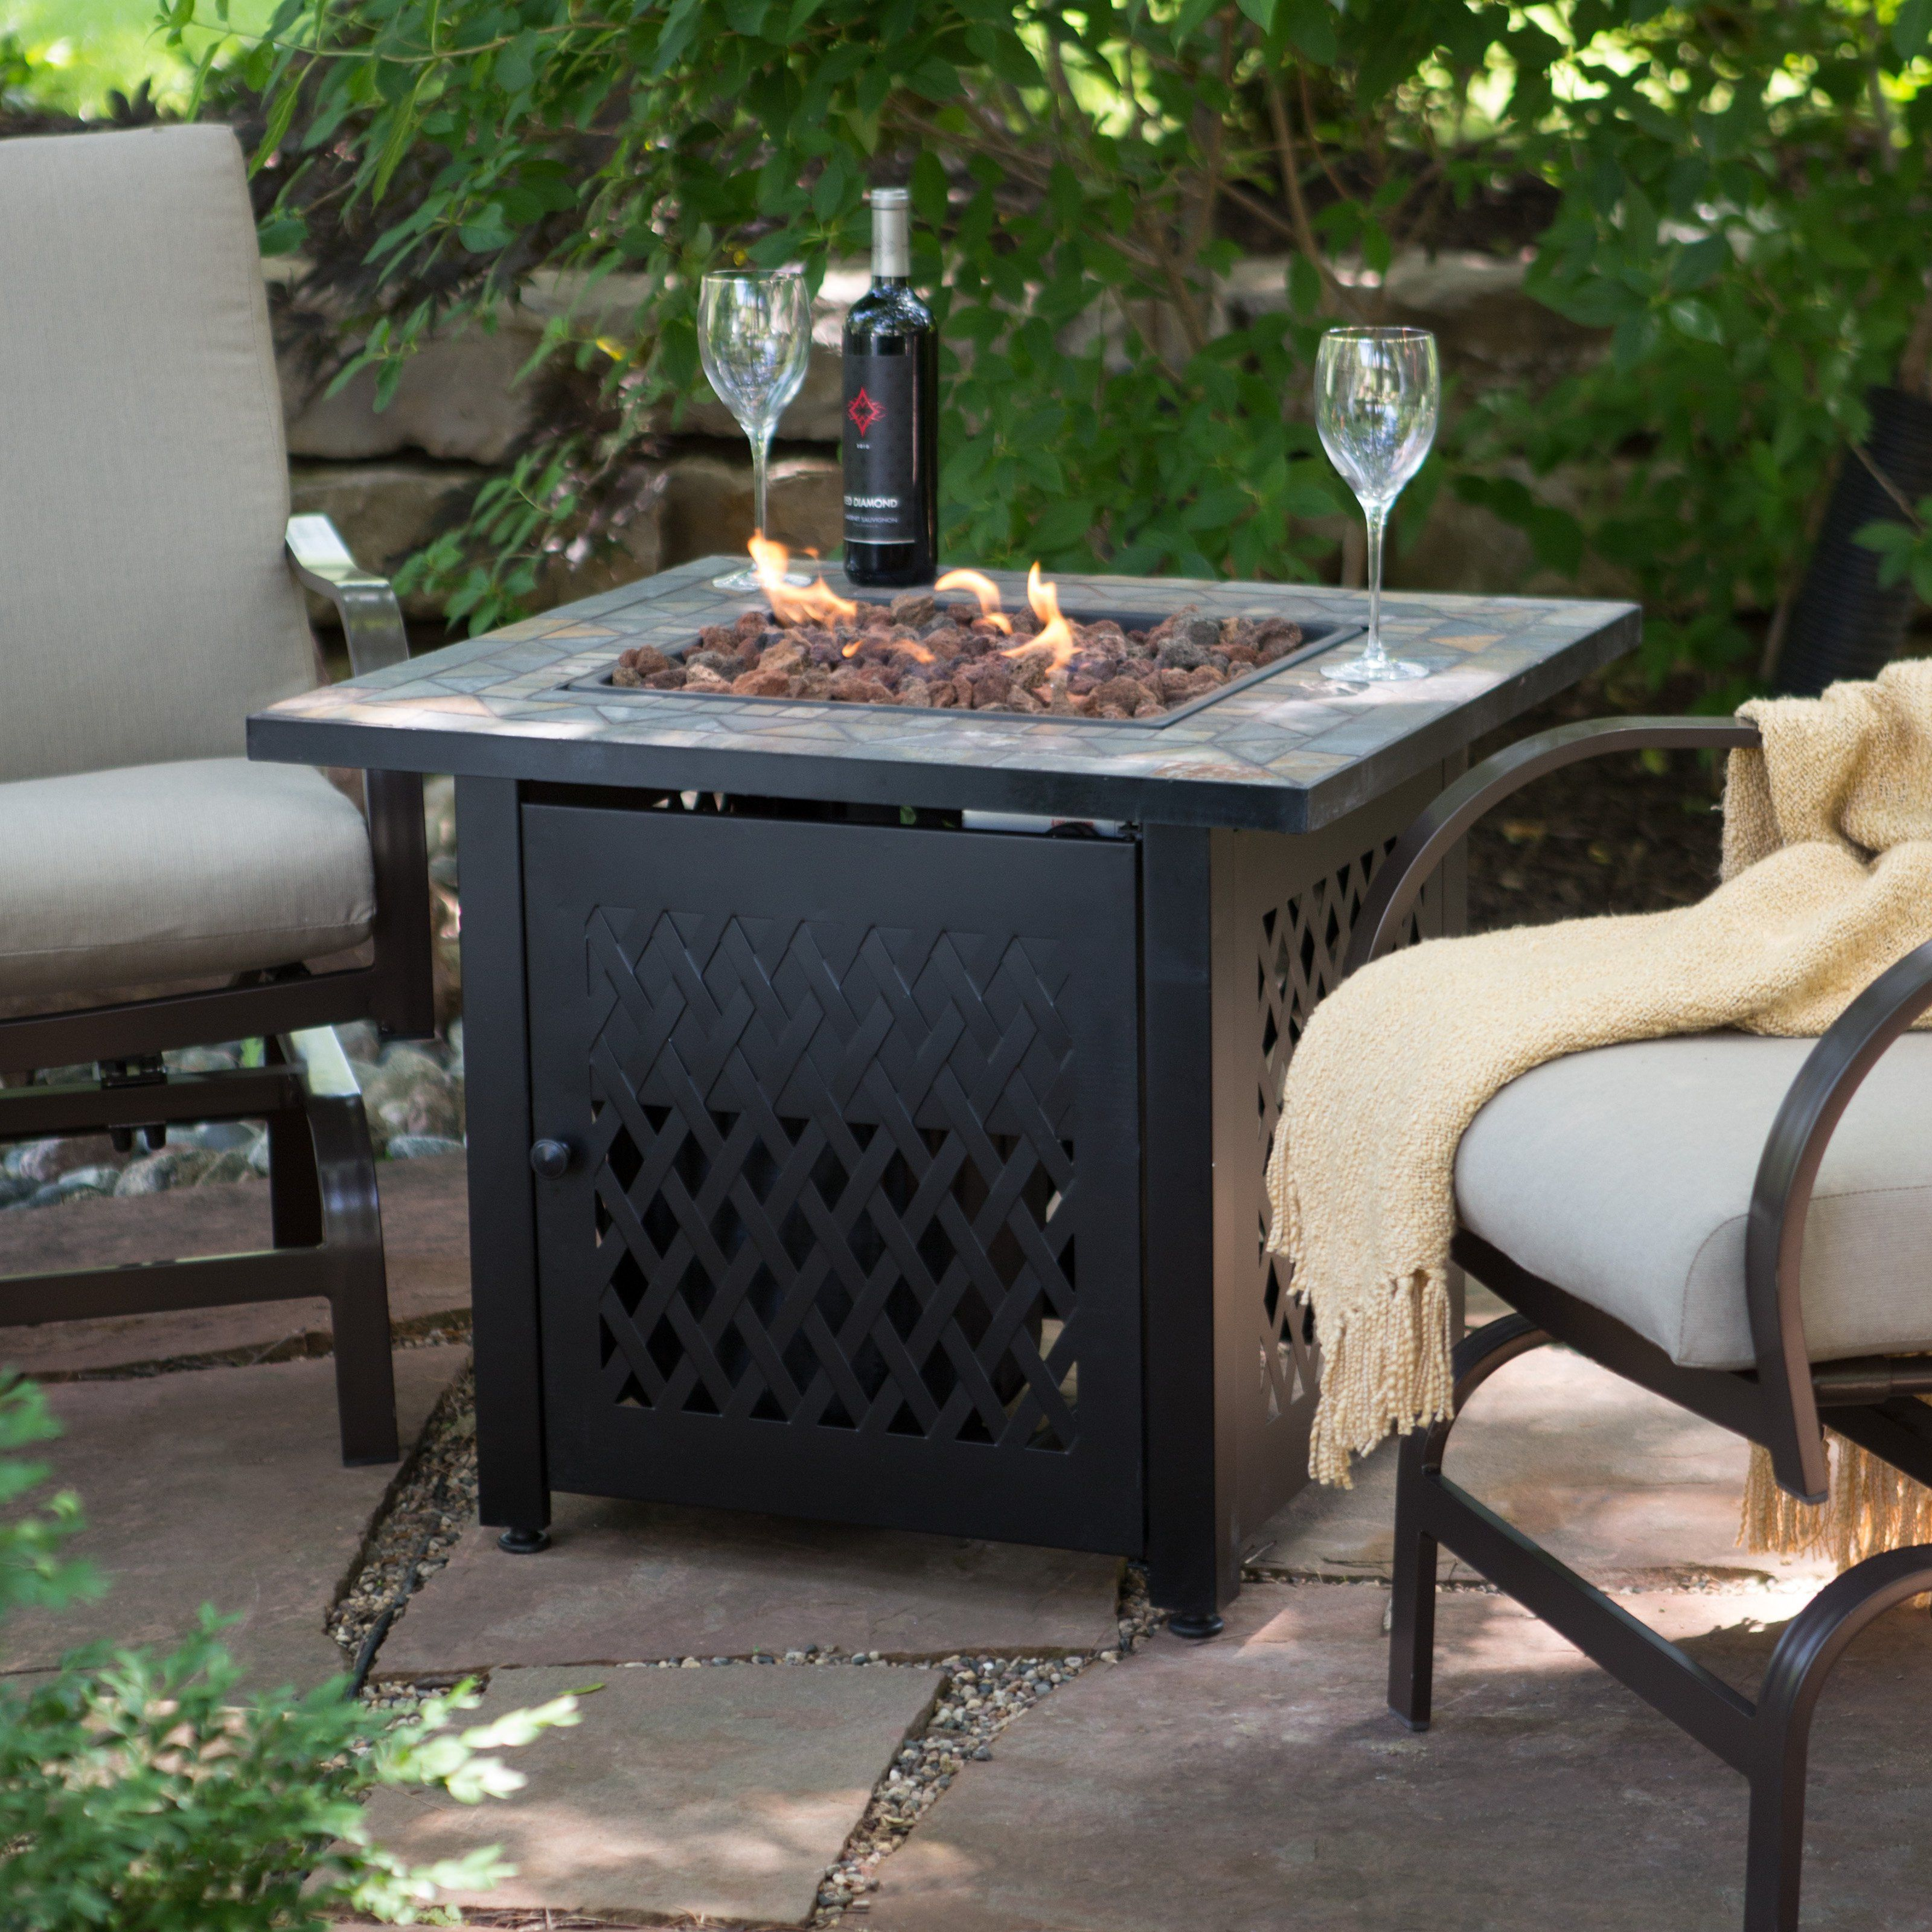 gas patio table. outdoor living · uniflame slate mosaic propane fire pit table with free cover | from hayneedle.com gas patio